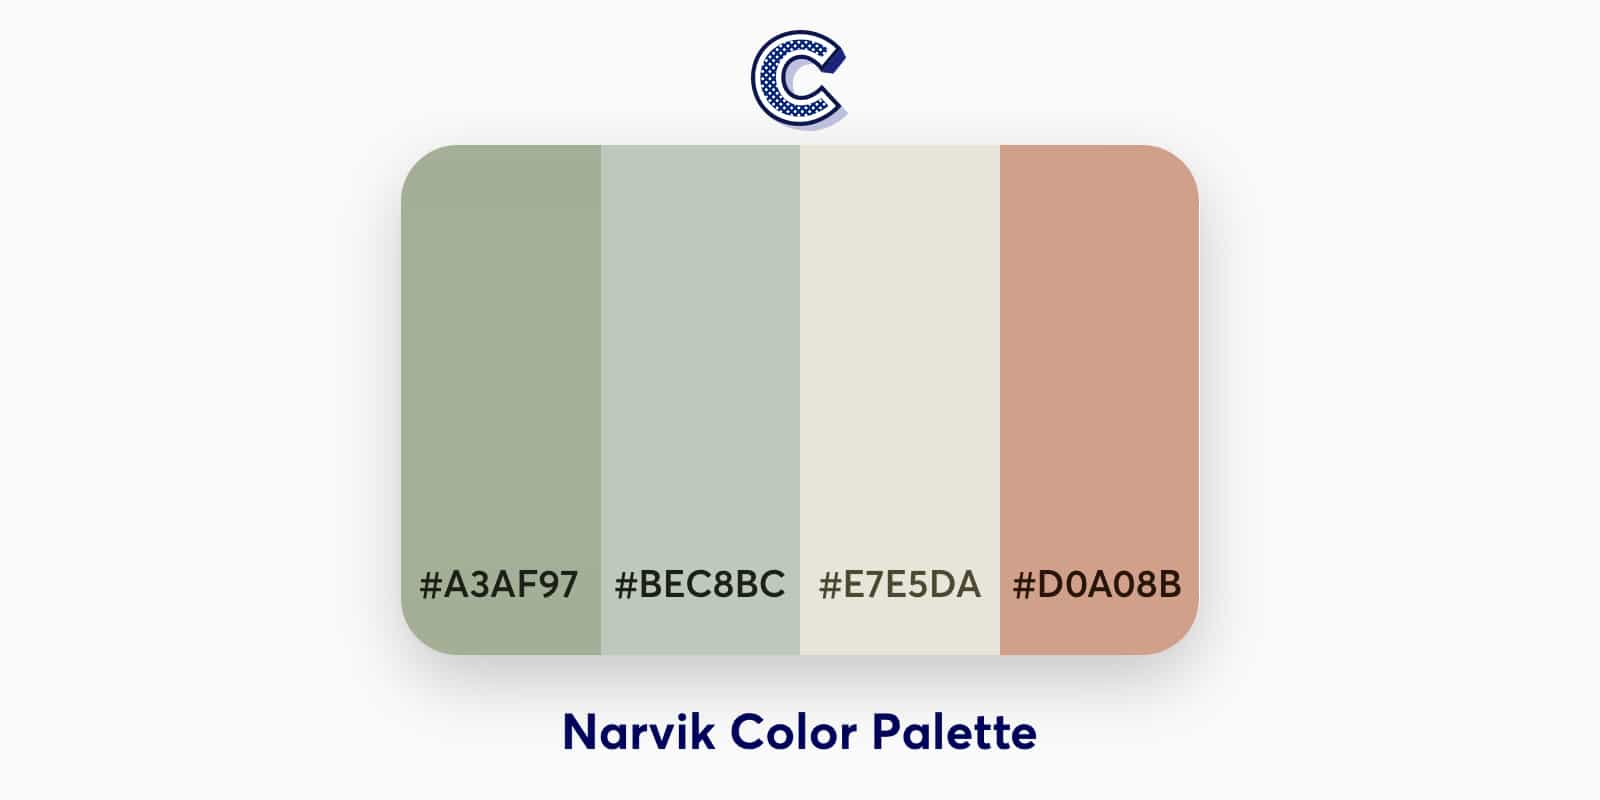 the featured image of narvik color palette